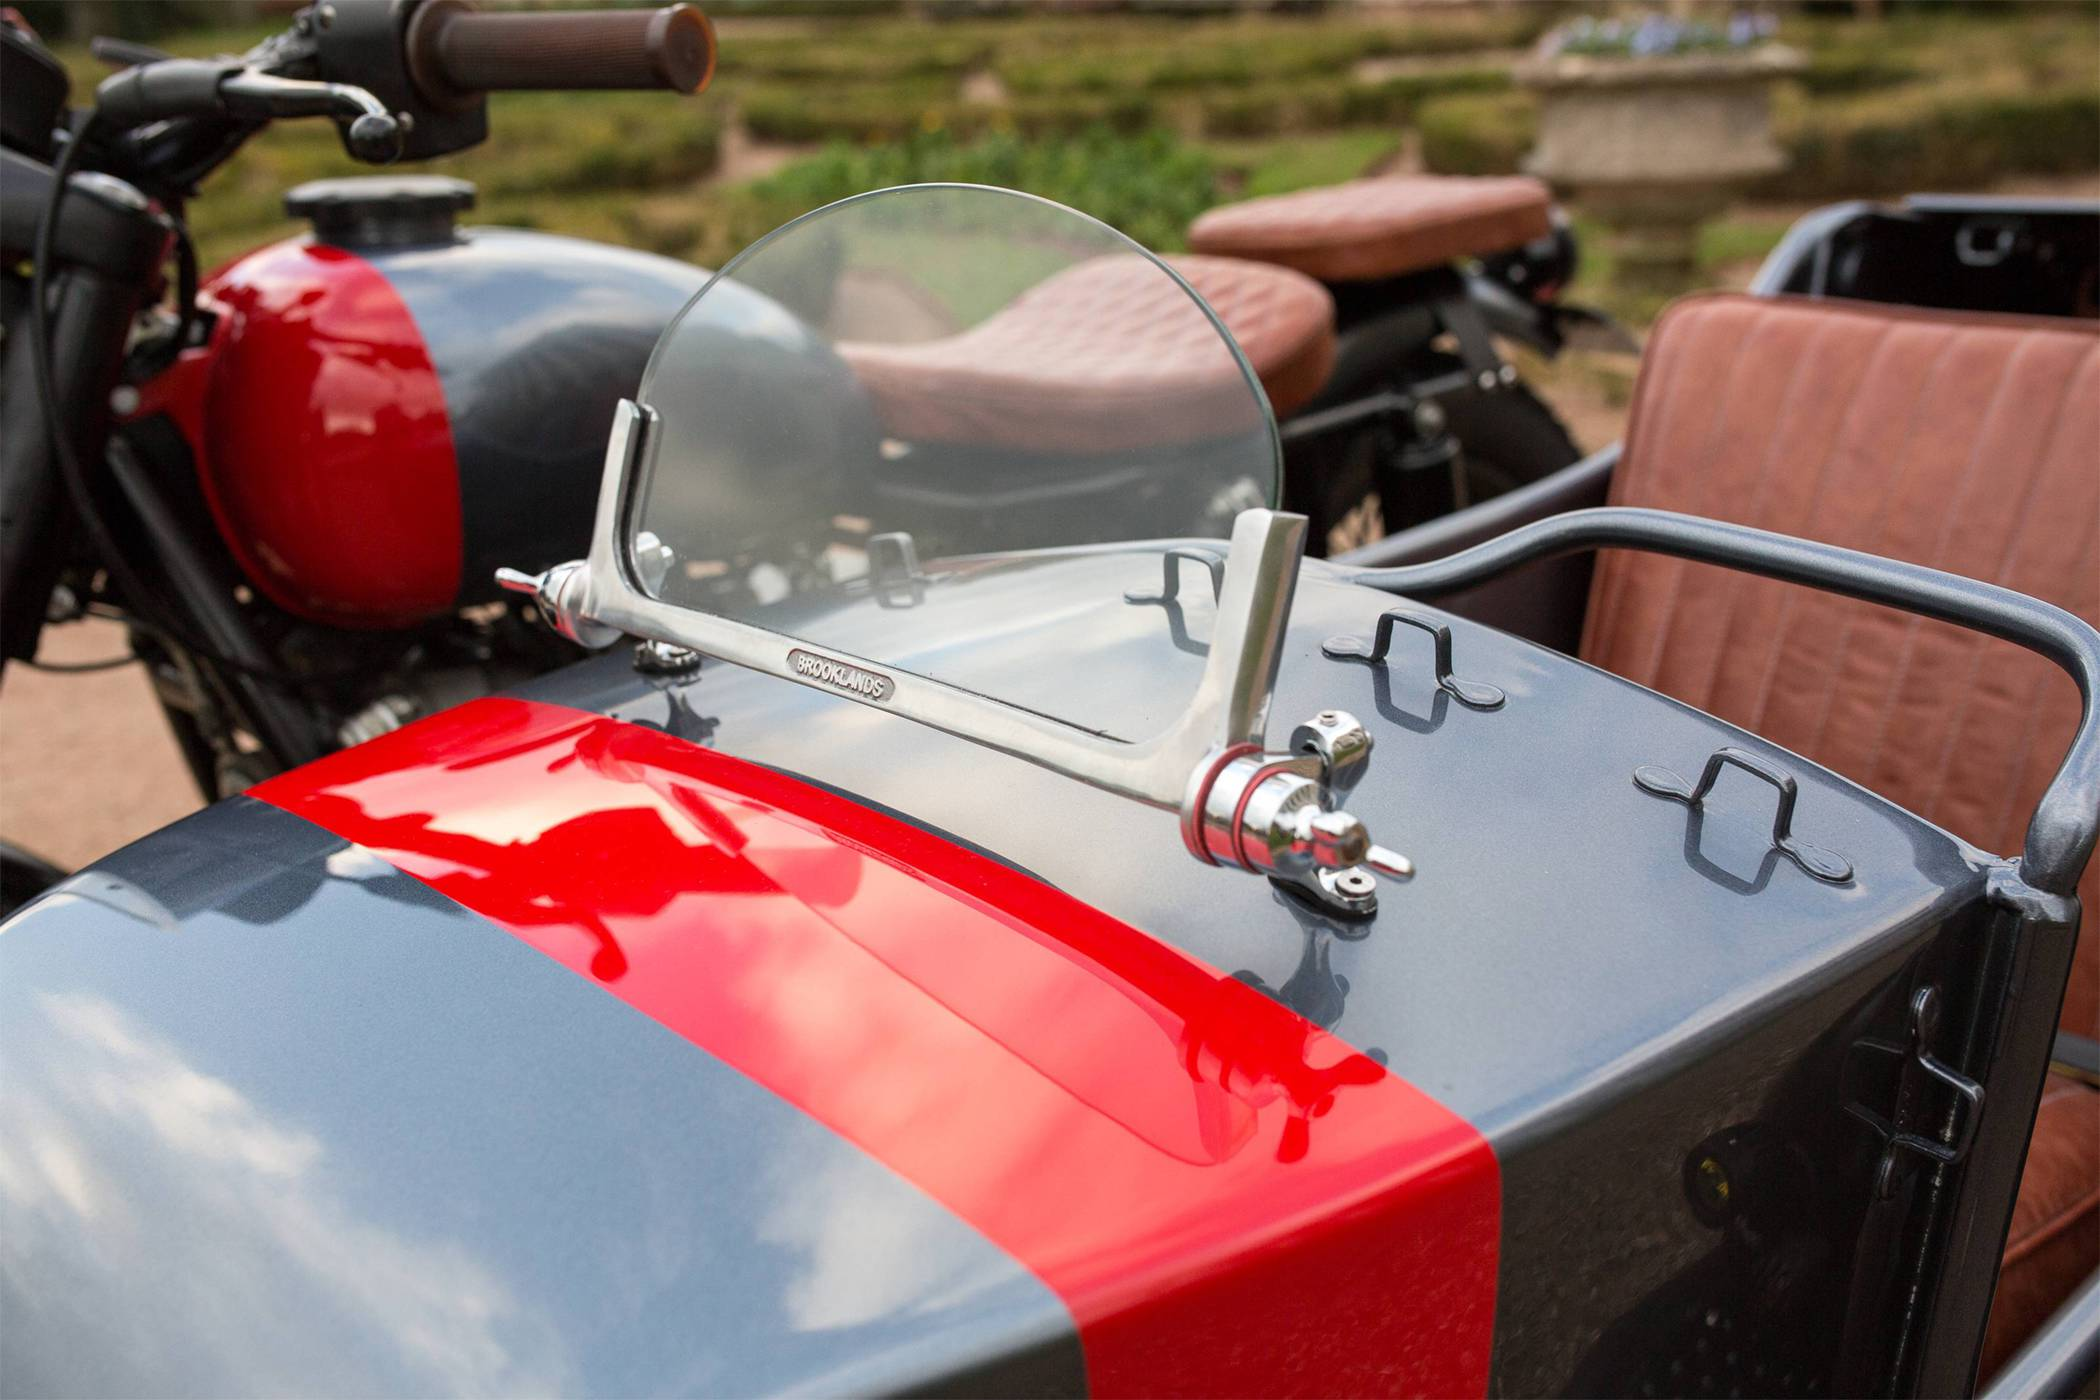 Custom Ural Sidecar Has Room for Four and We Love It